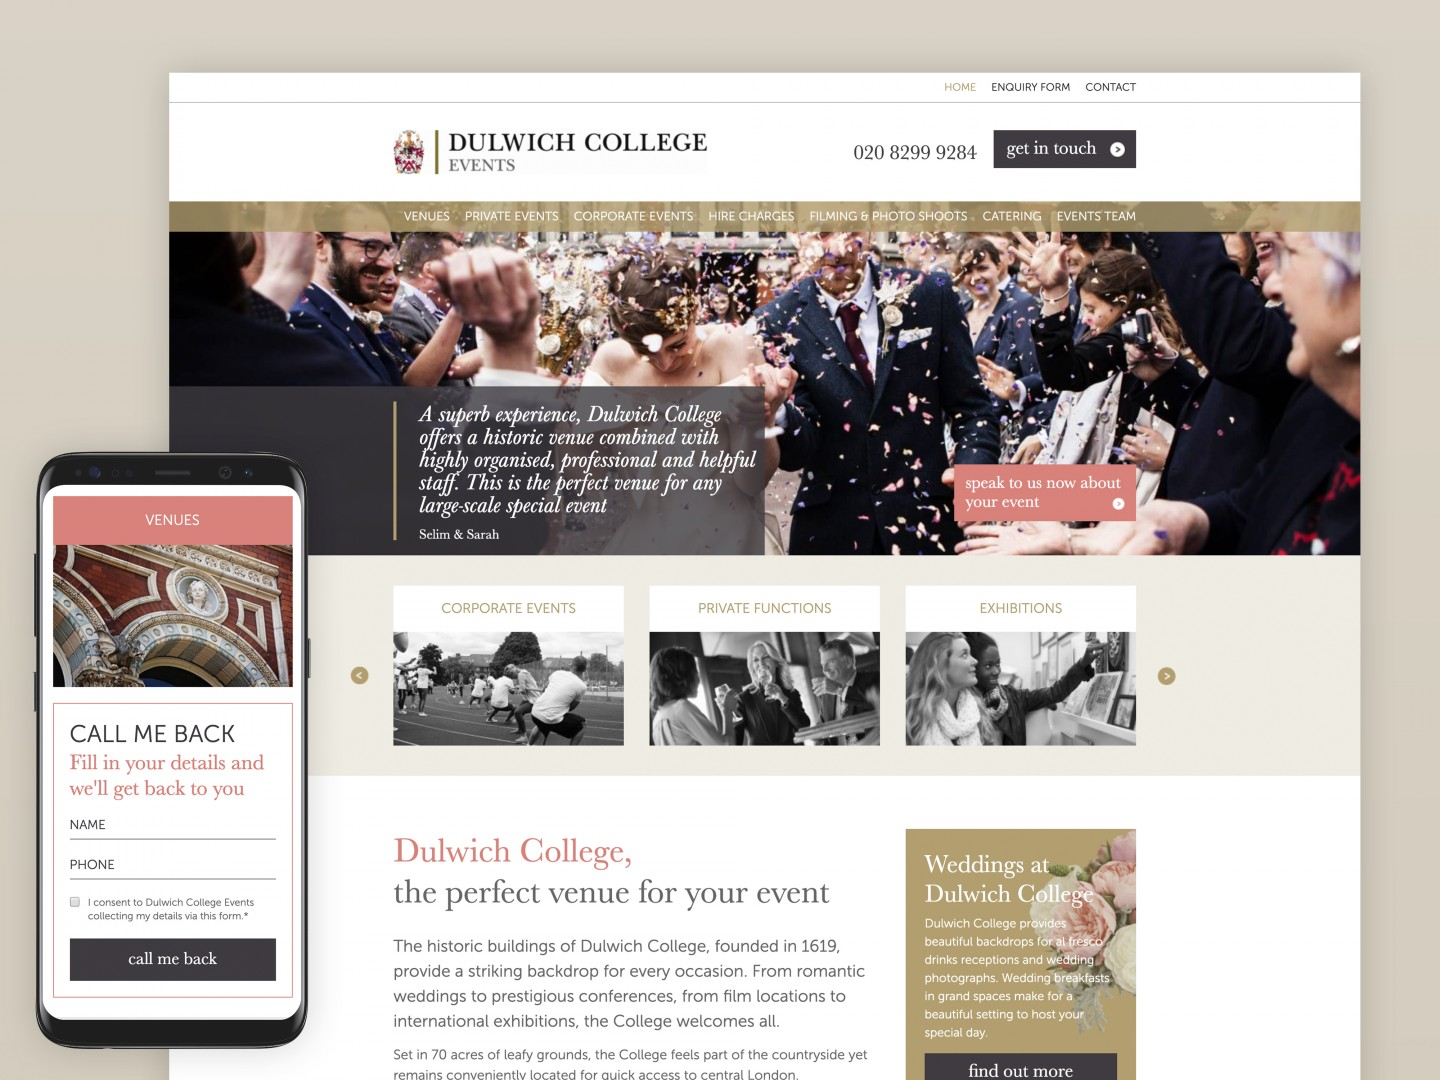 Website development and design - Dulwich College Events